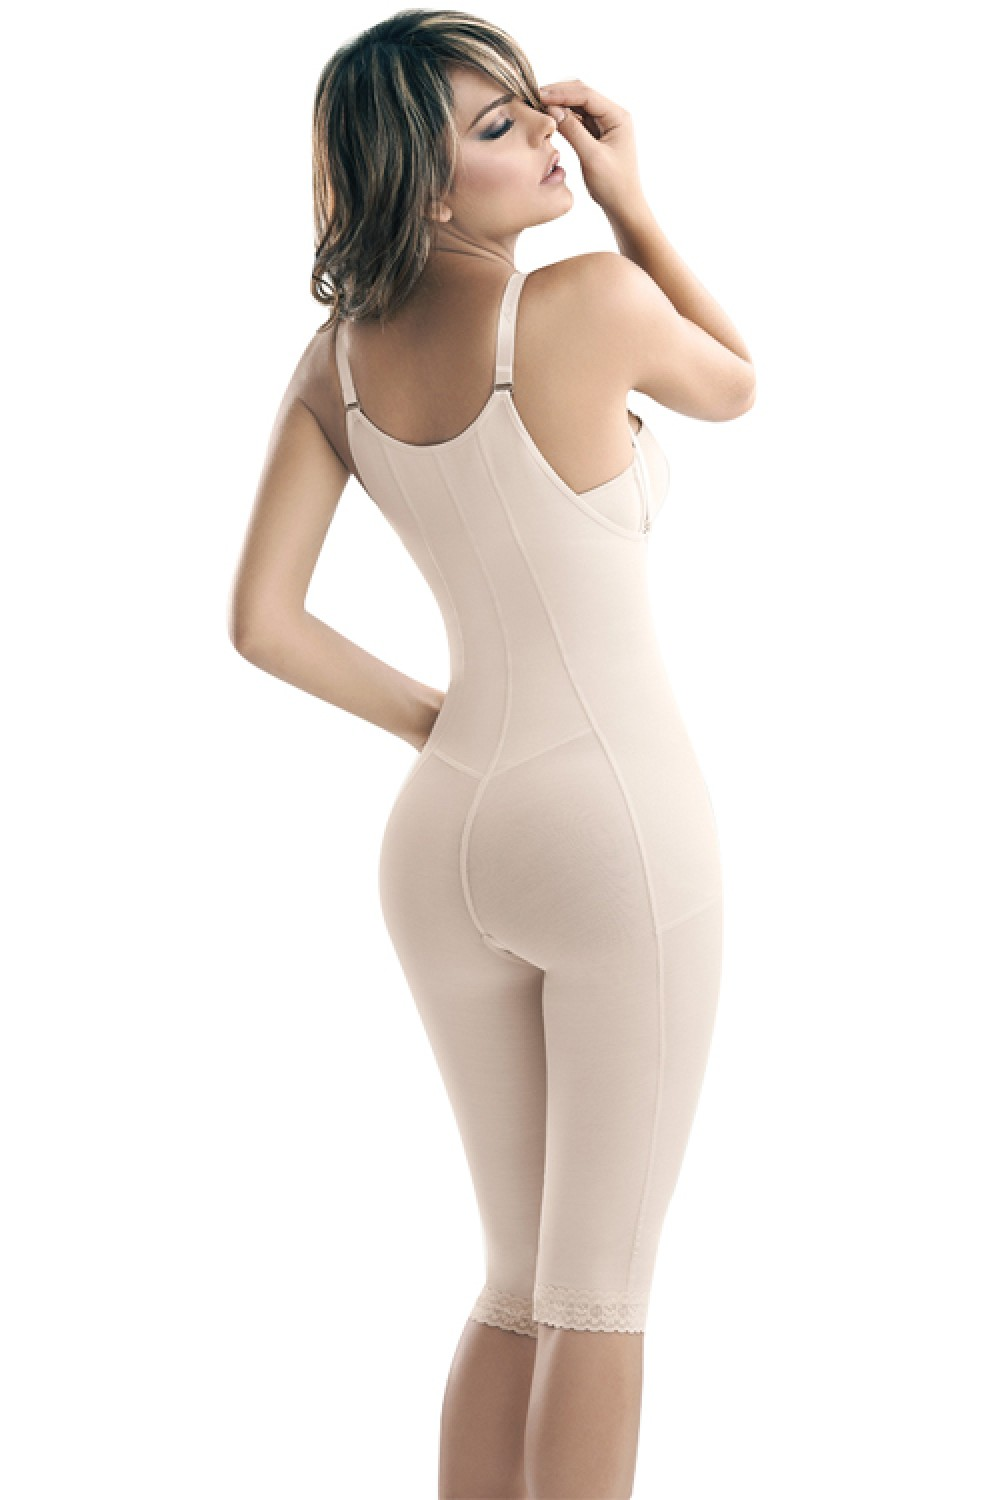 Nude Adjustable Straps Body Shaper With Long Pants Open Bust